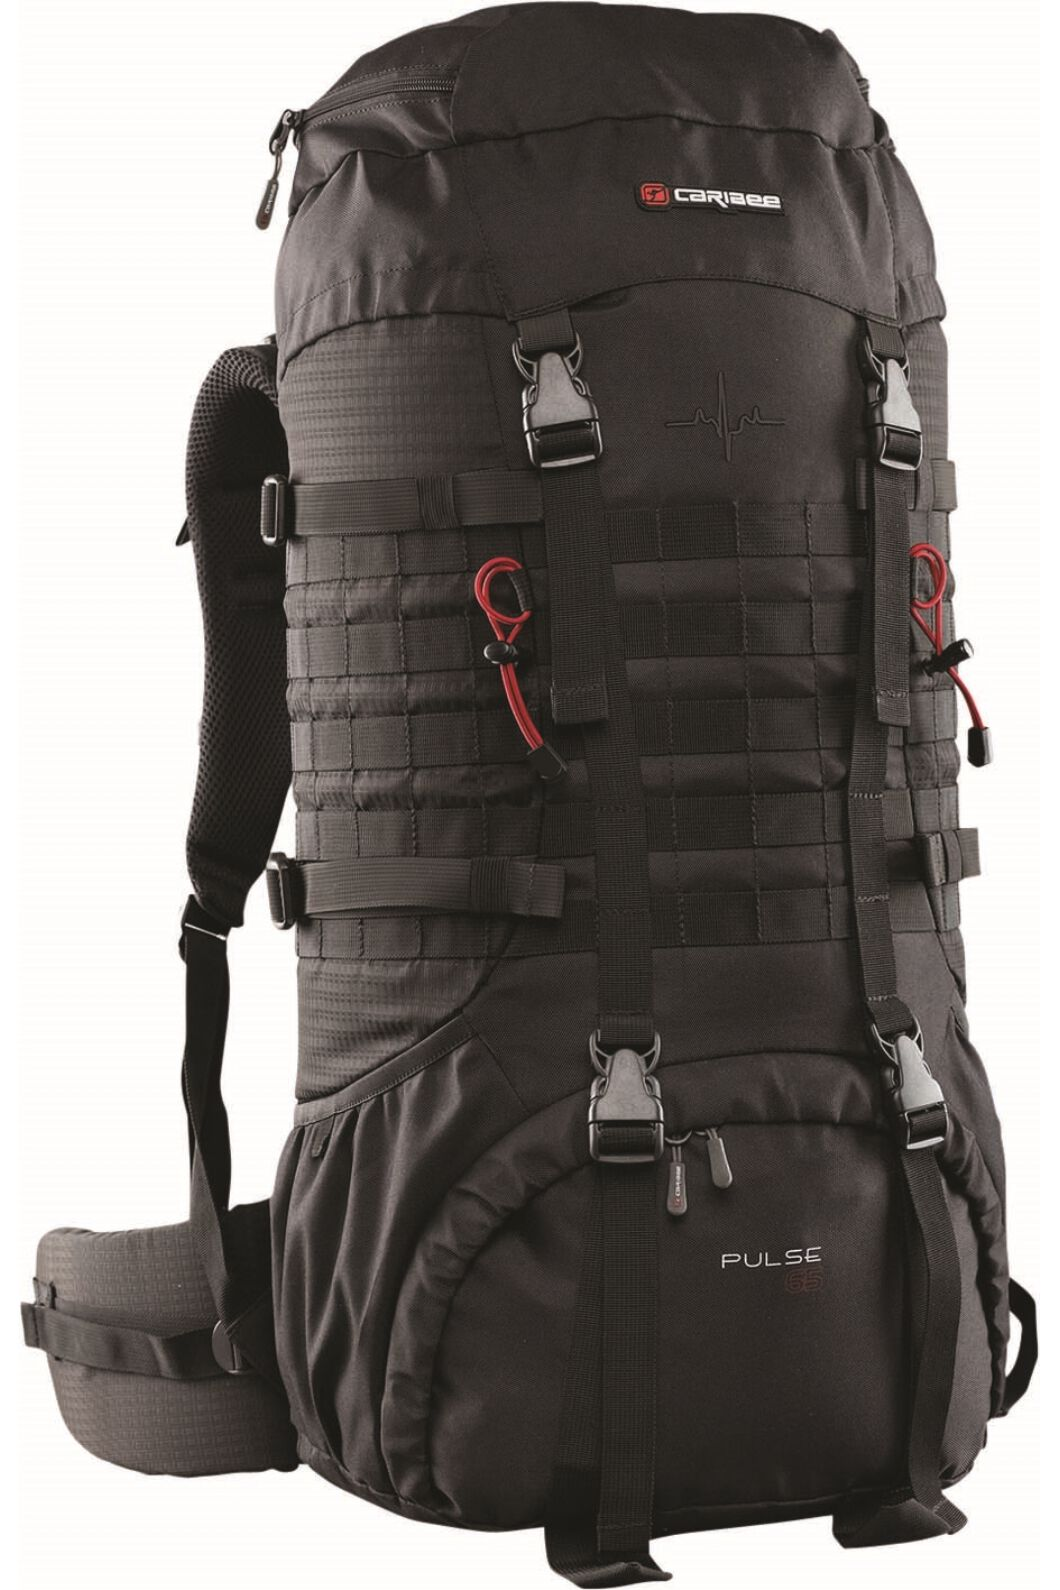 Caribee Pulse Trekking Pack 65L, None, hi-res